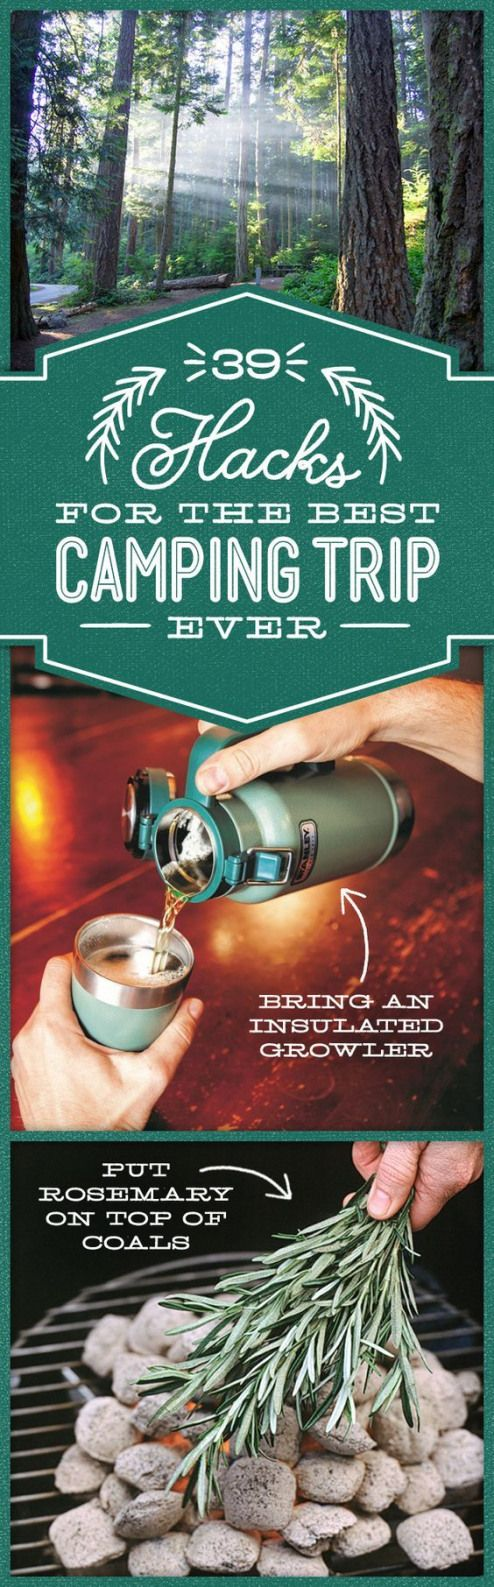 Pin By Timothy Lattig On Camping In 2020  With Images